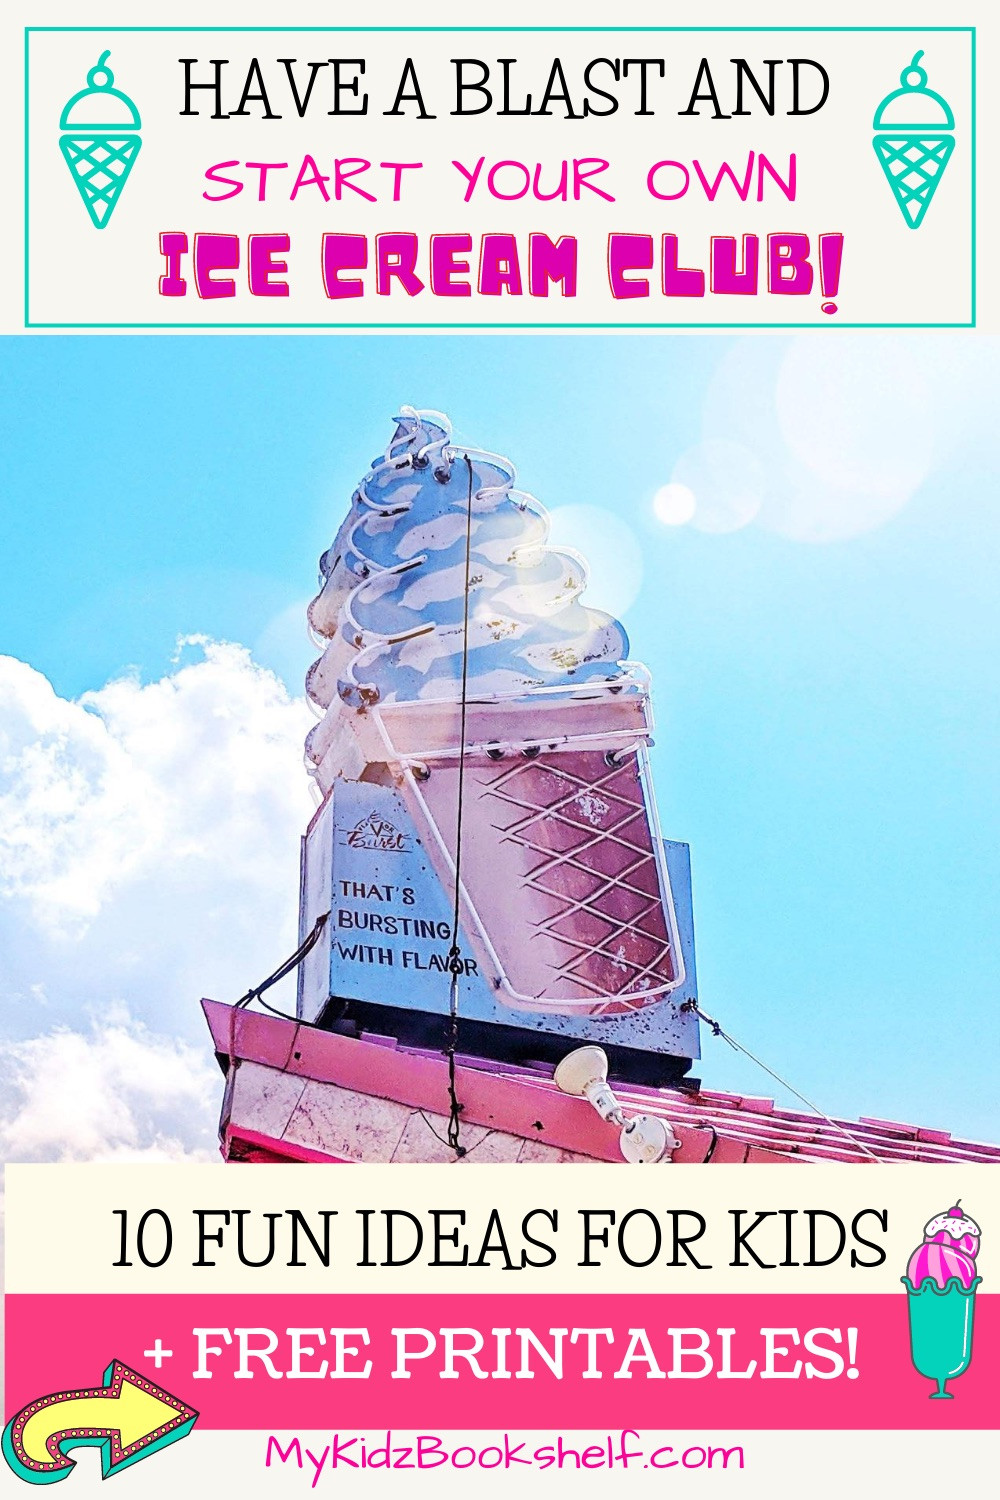 Ice Cream cone sign on top of building pinterest pin